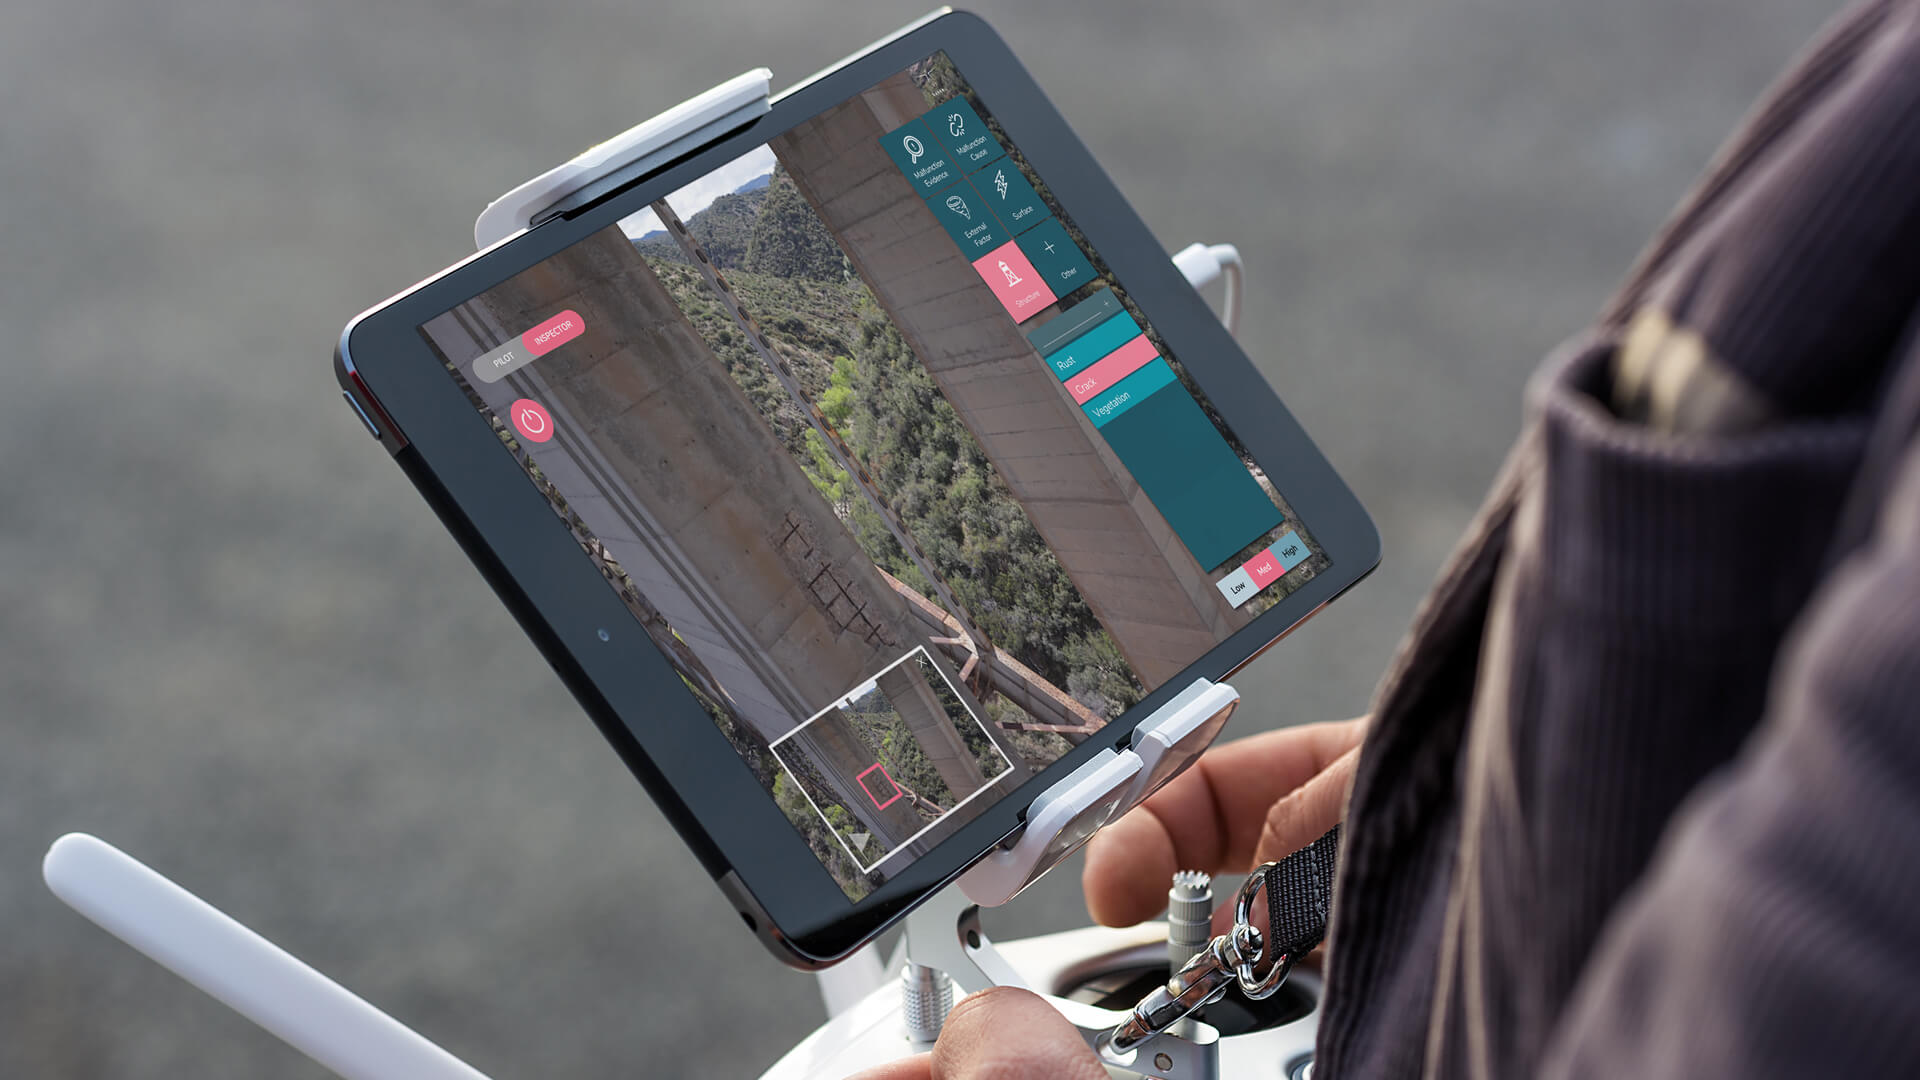 NAR software saves weeks on drone inspection data management for WSP USA & Keystone Aerial Surveys during the Delaware Memorial Bridge inspection.